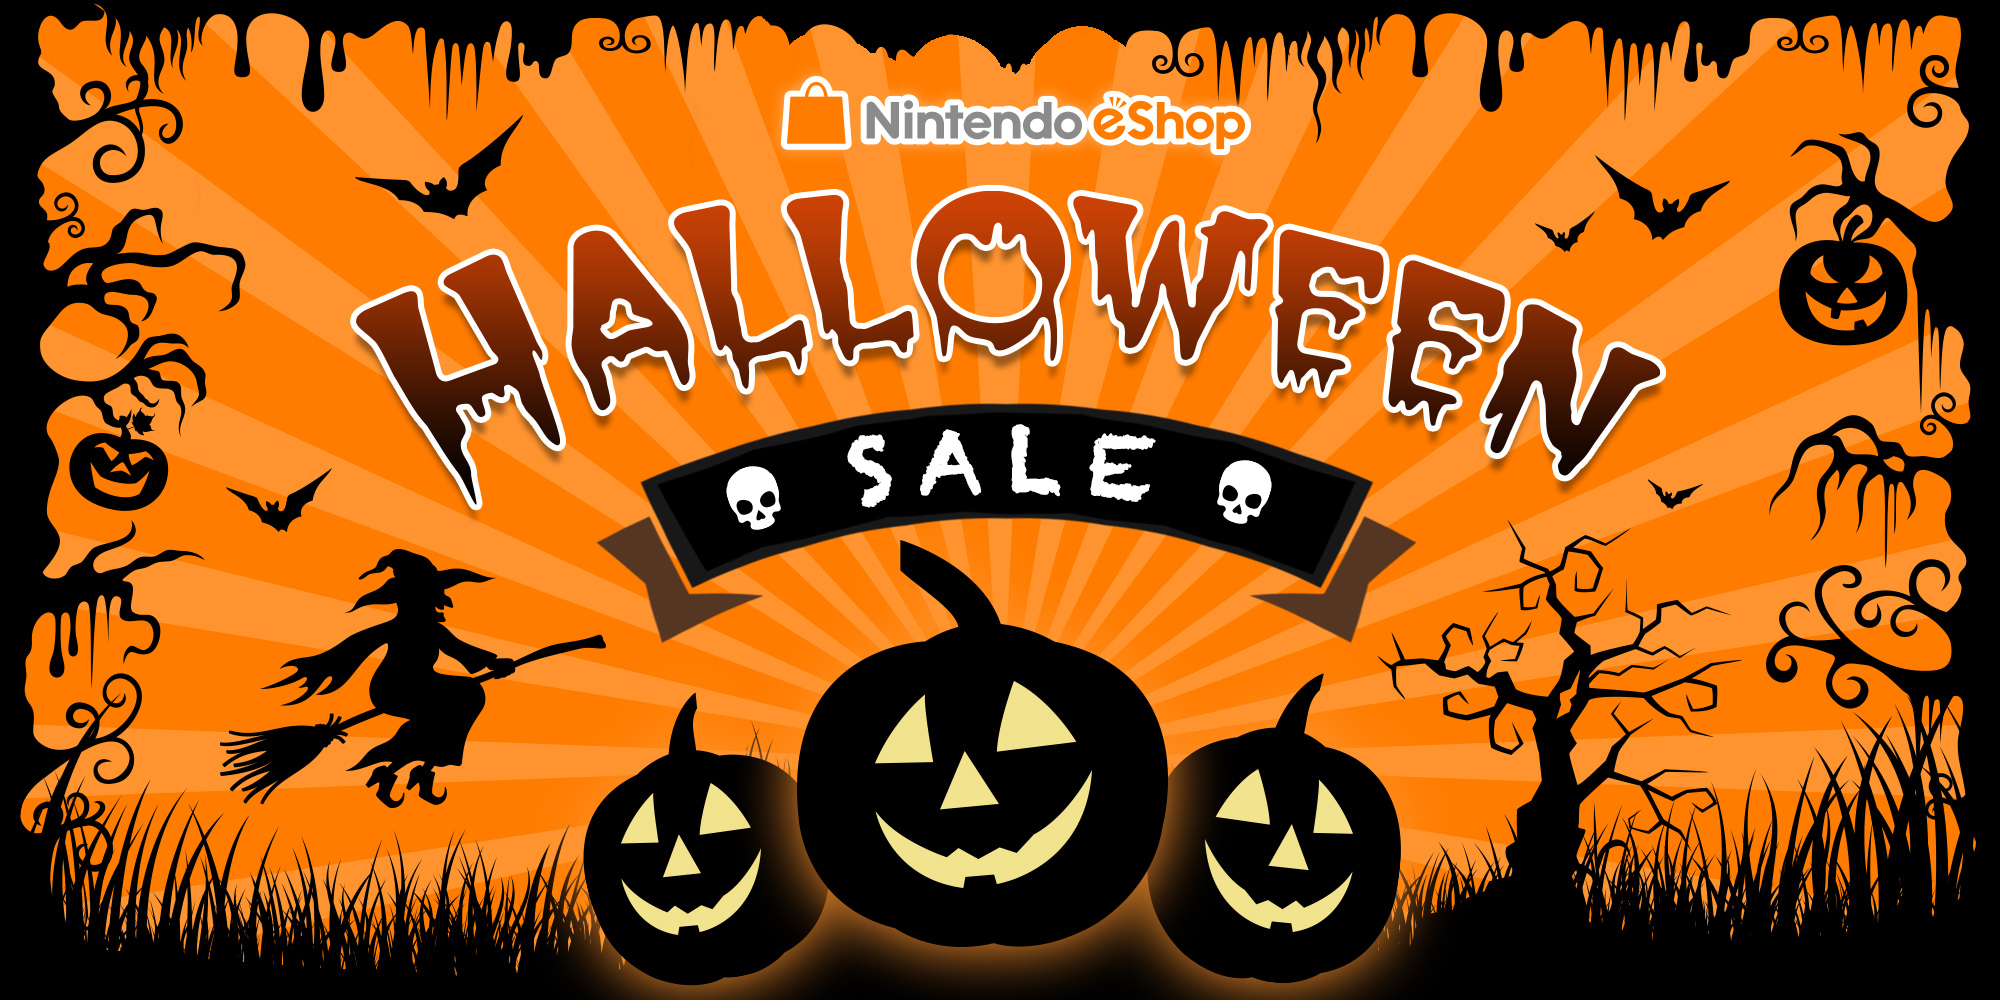 nintendo eshop sale: halloween sale | news | nintendo